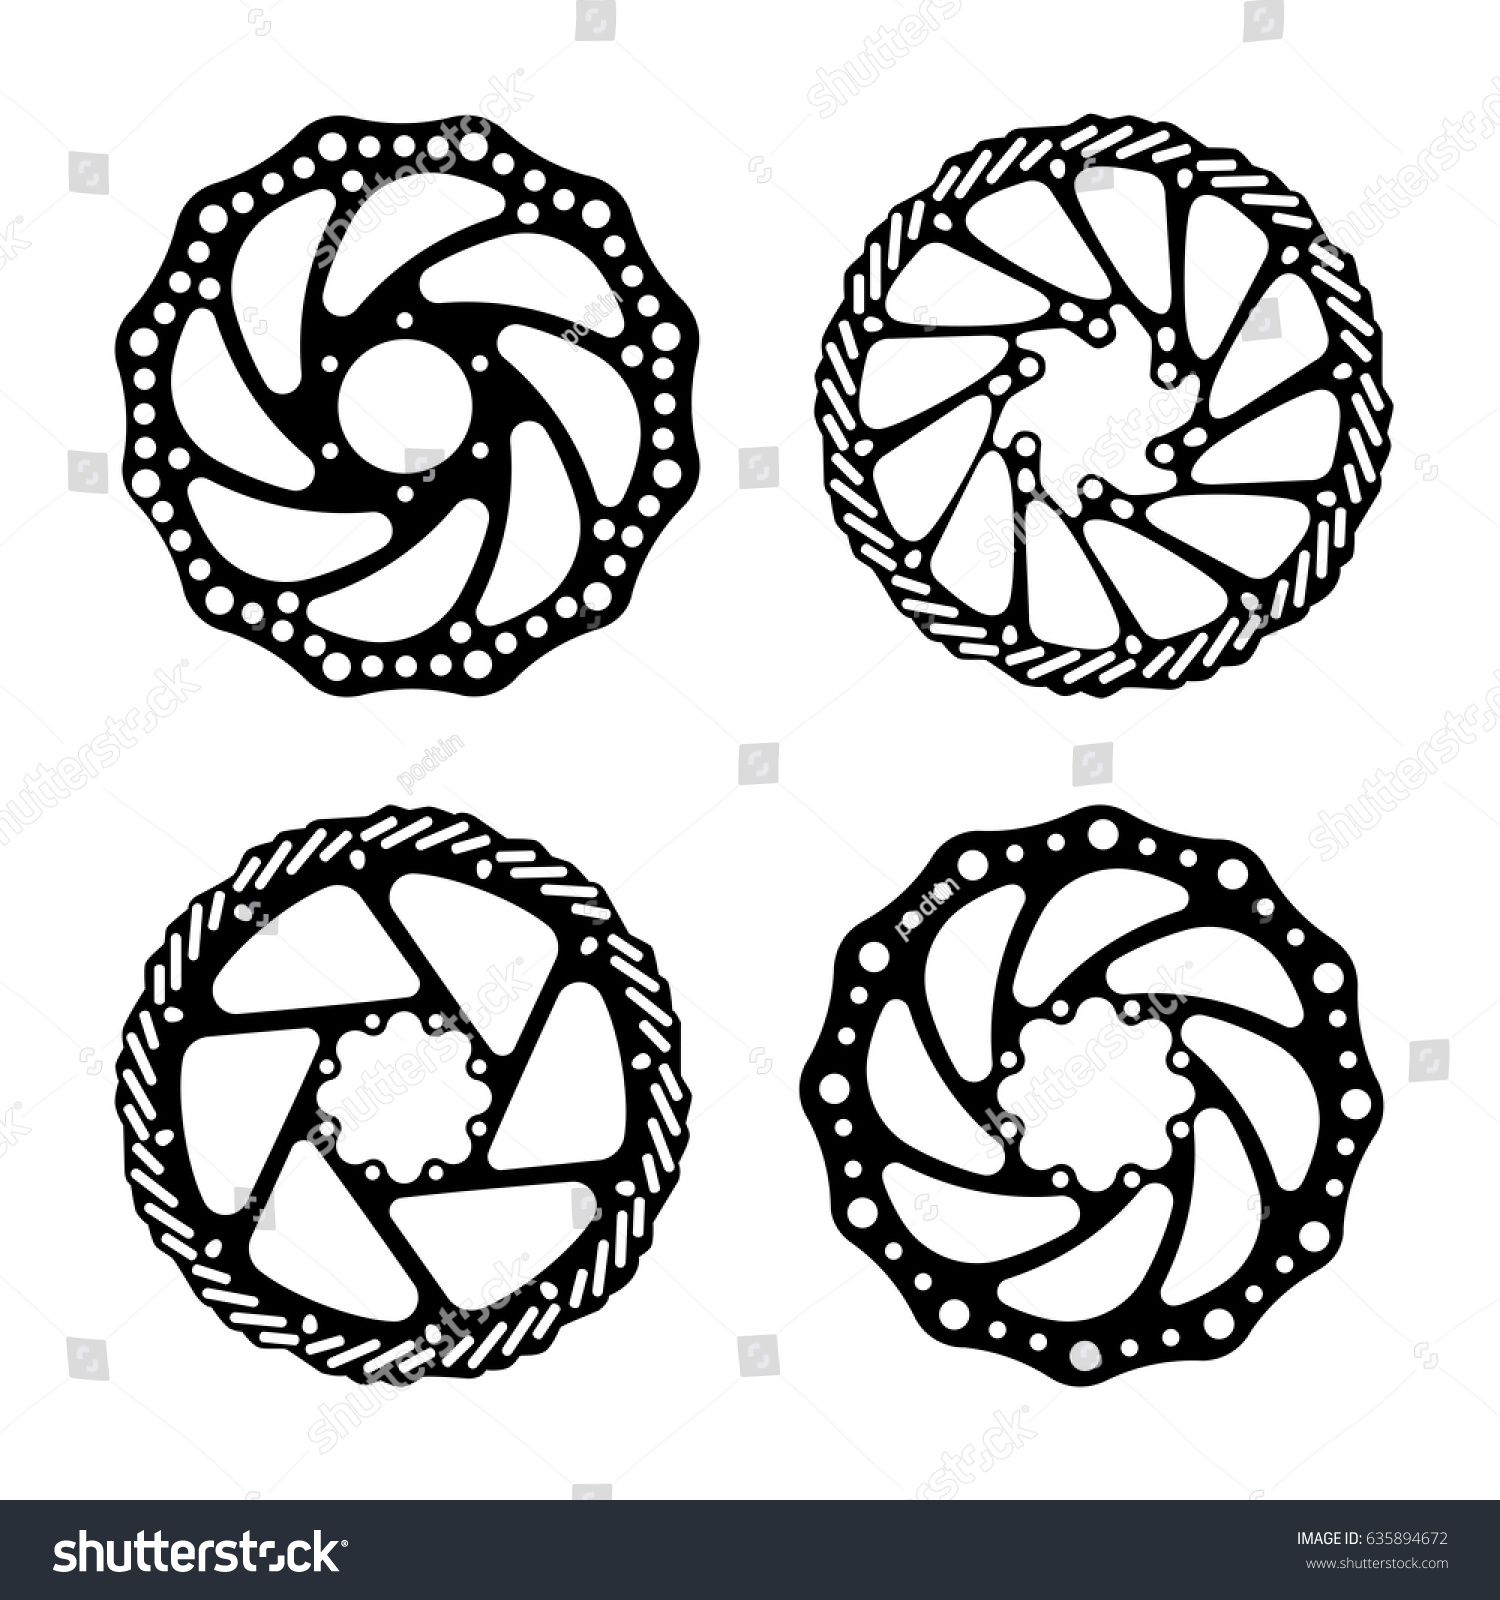 Bicycle Brake Disc Bicycle Parts Vector Stock Vector Royalty Free